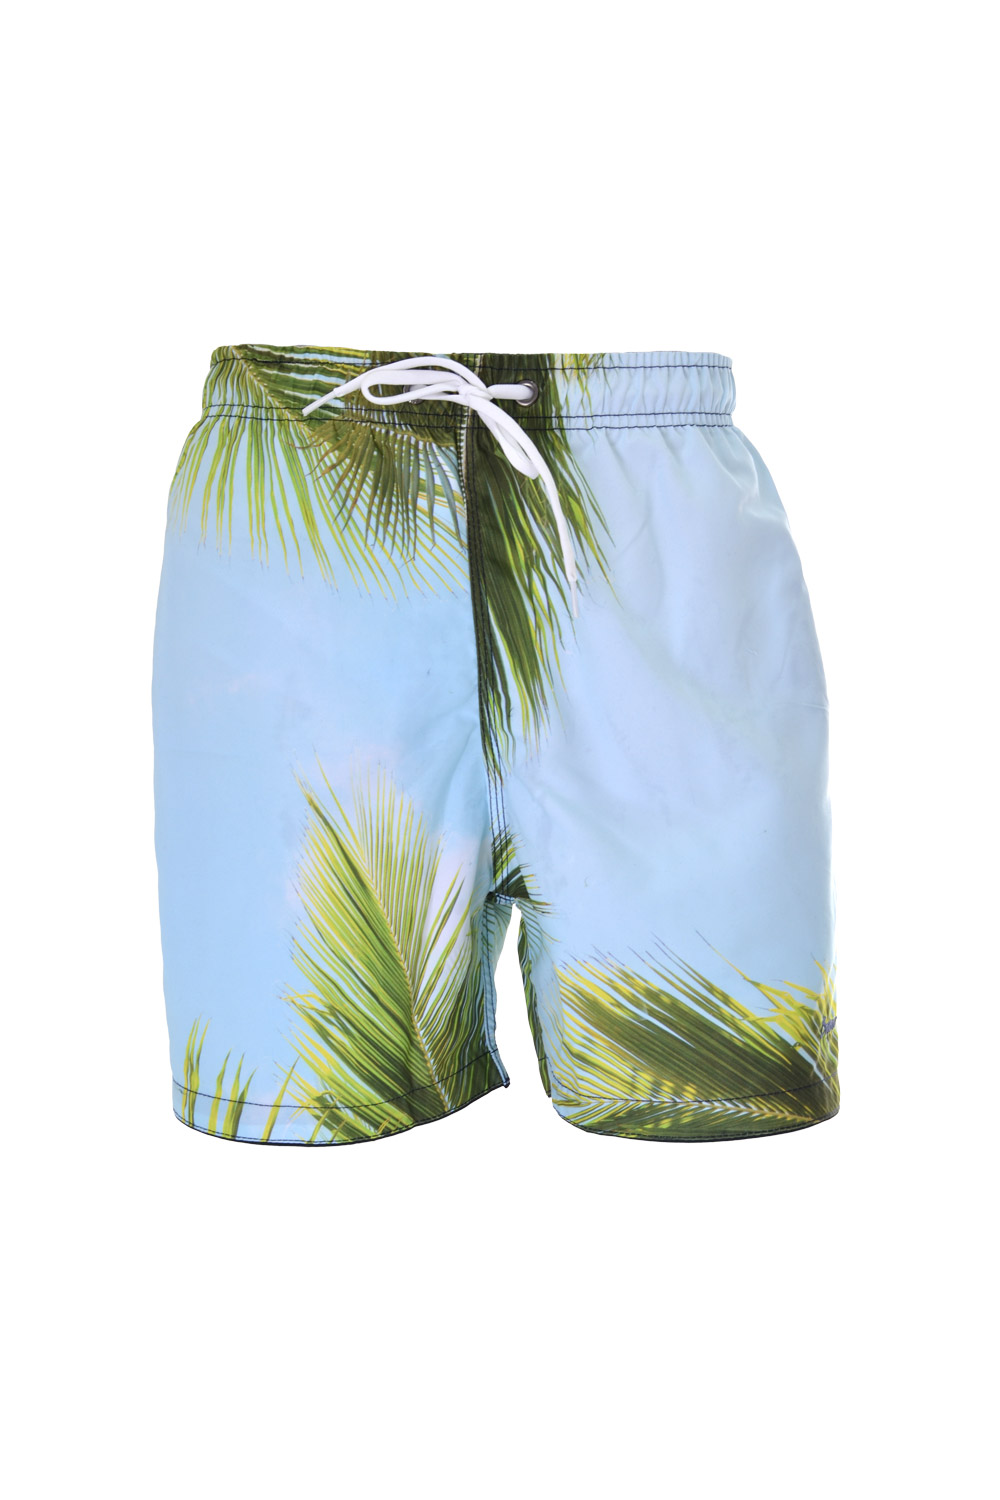 SHORTS MARINE POLIESTER CONCEPTS ESTAMPA SUMMER SKY